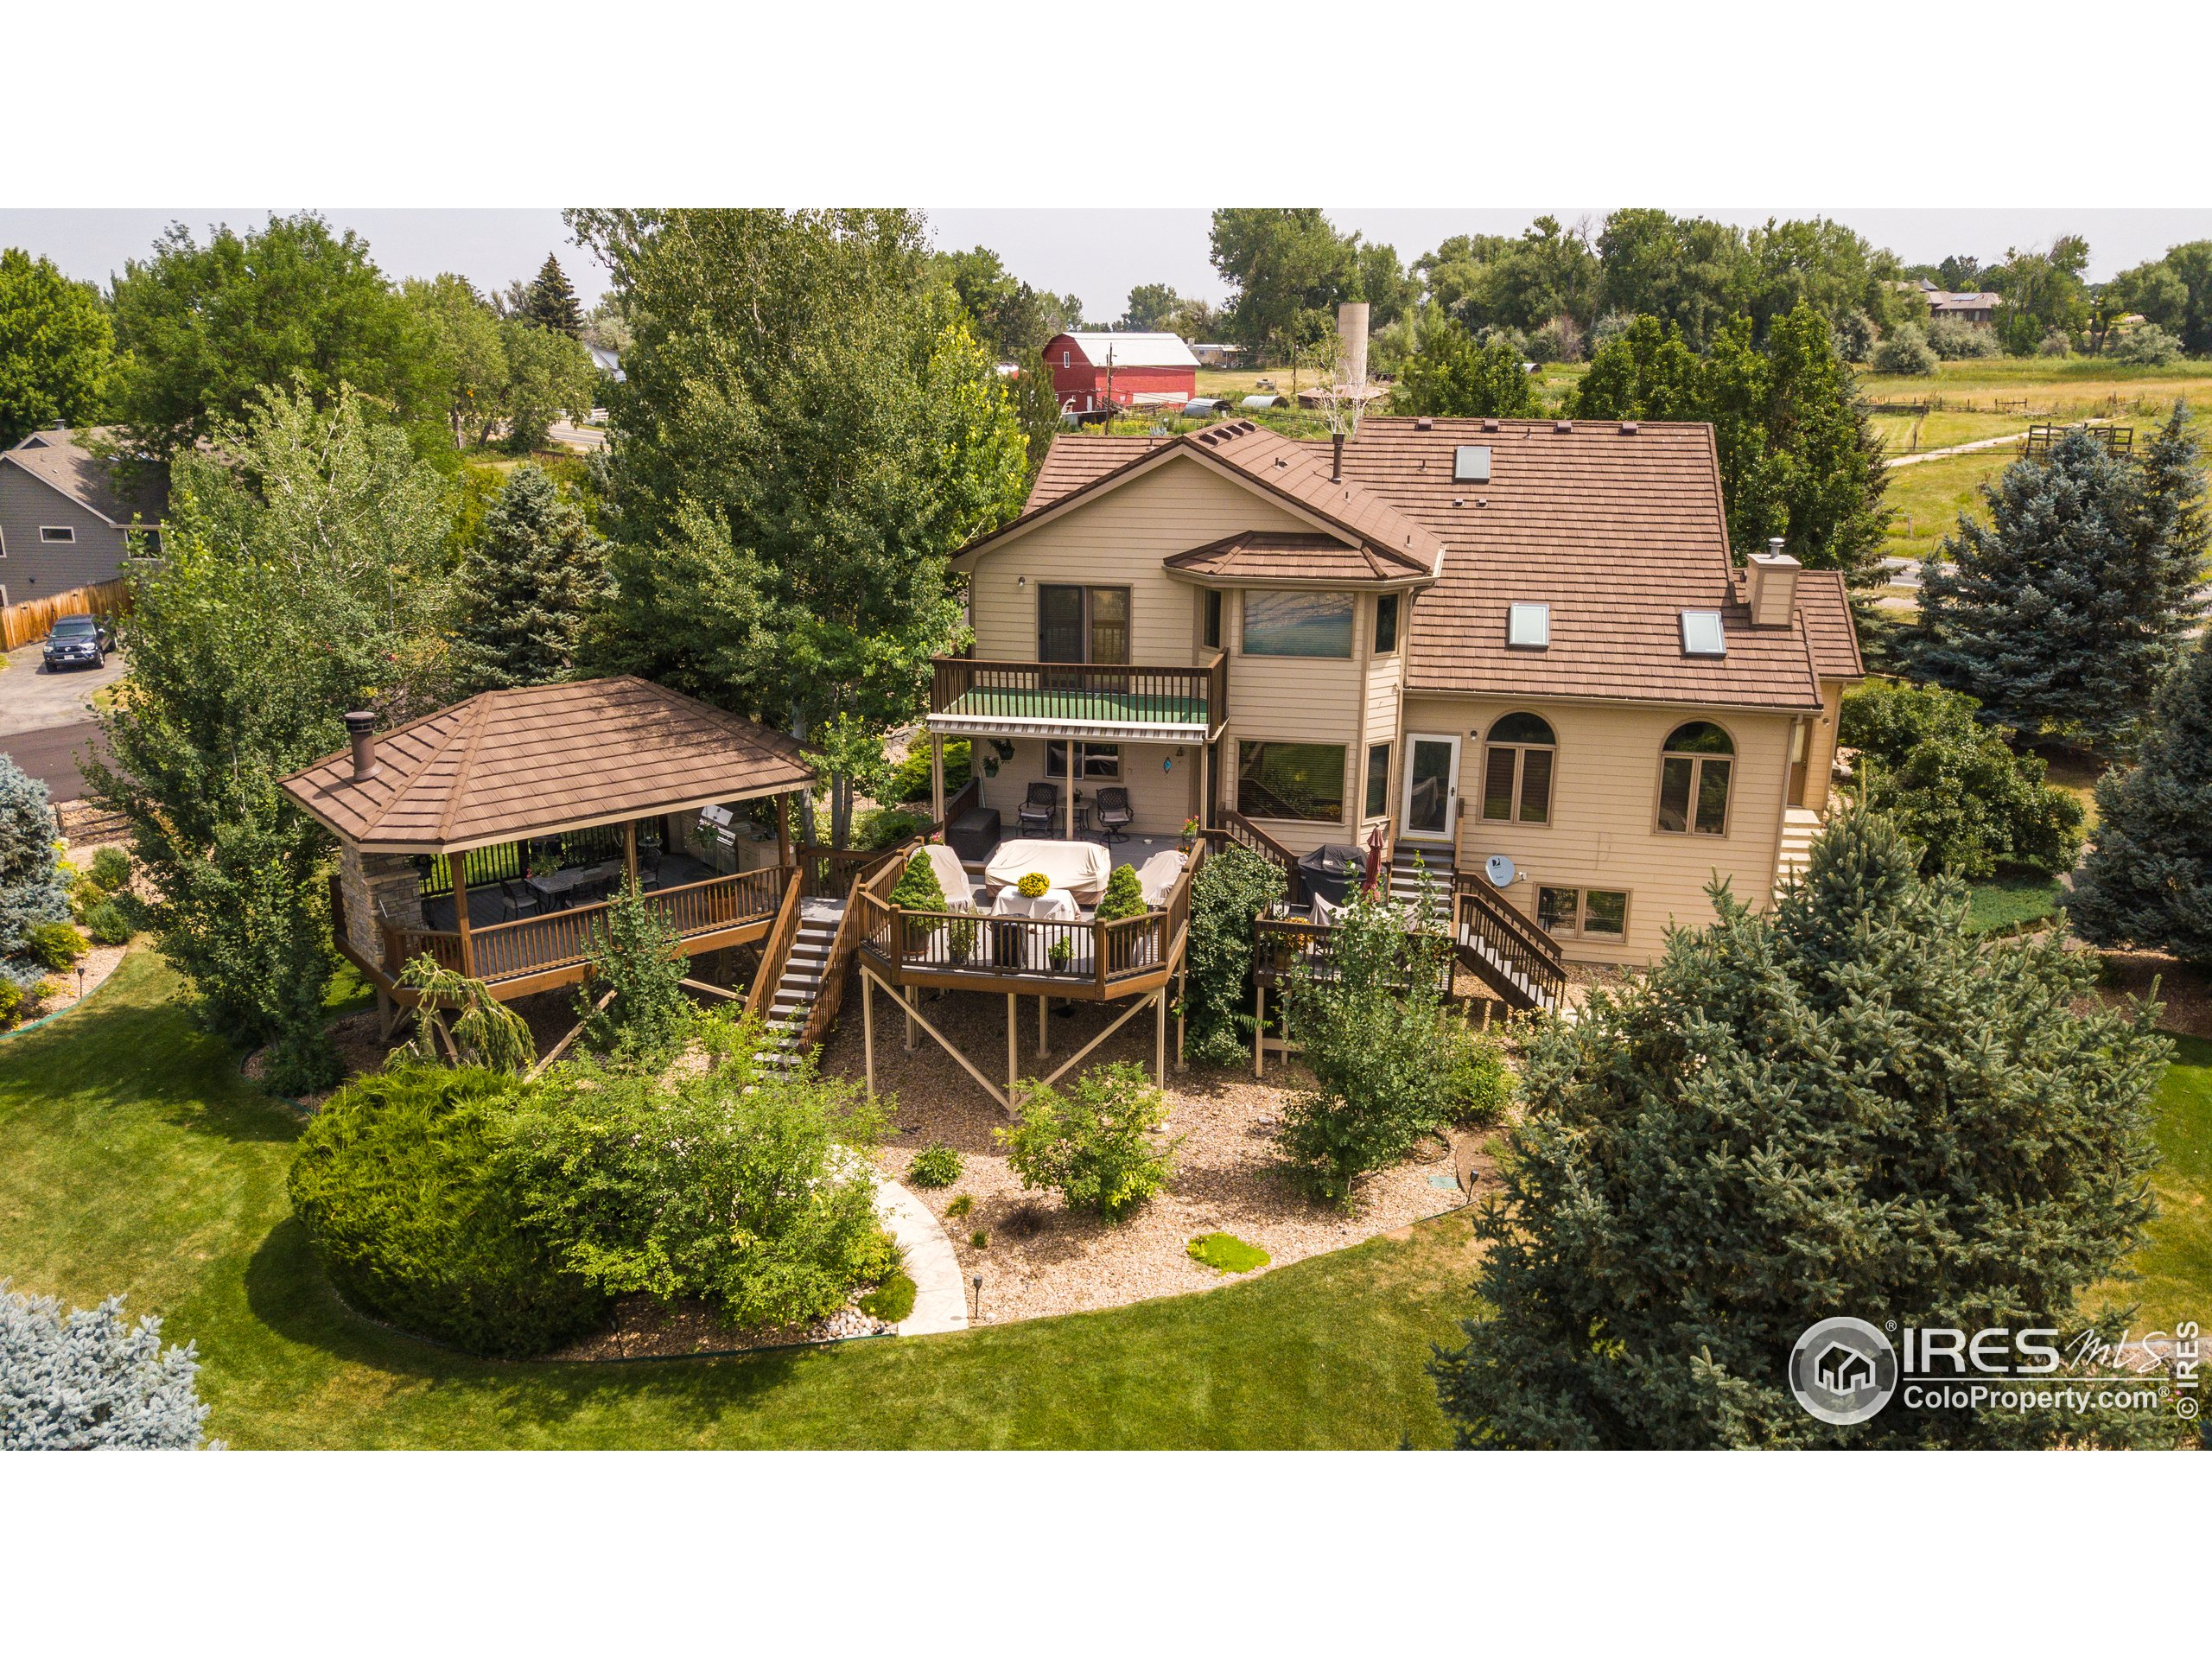 Incredible, well cared for property ideal for your outdoor enjoyment!